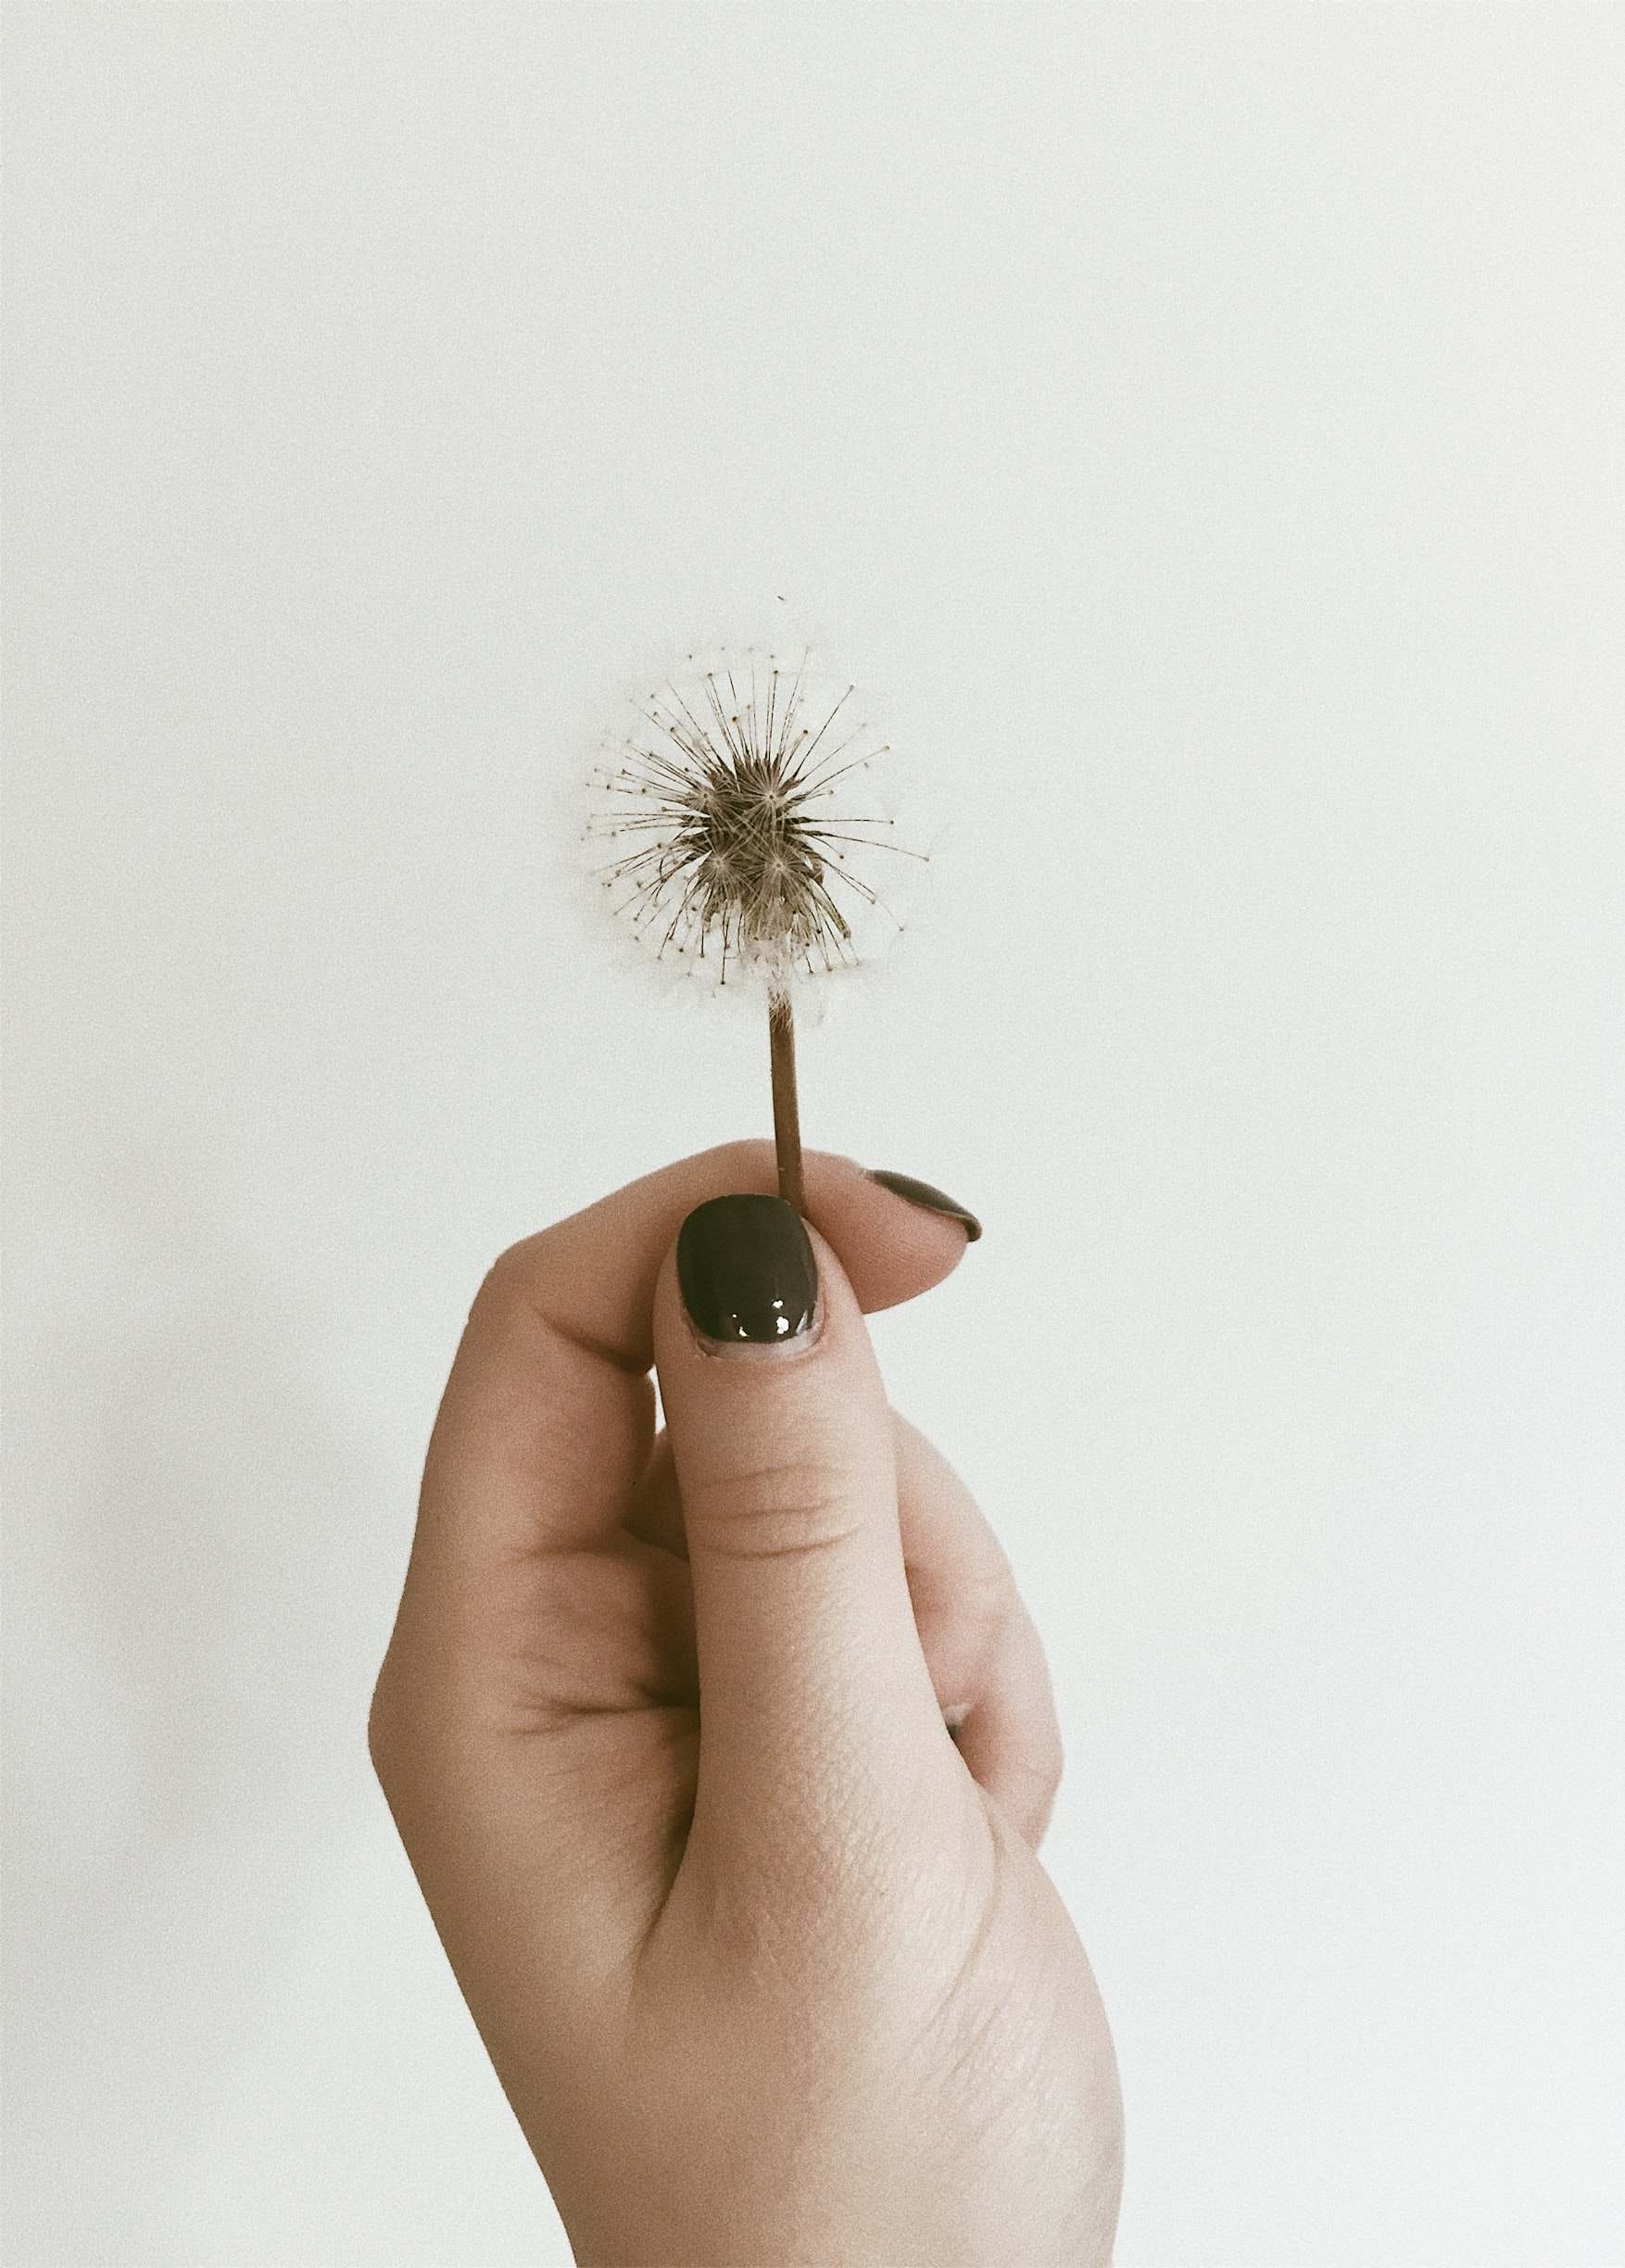 A woman's hand holding a dandelion